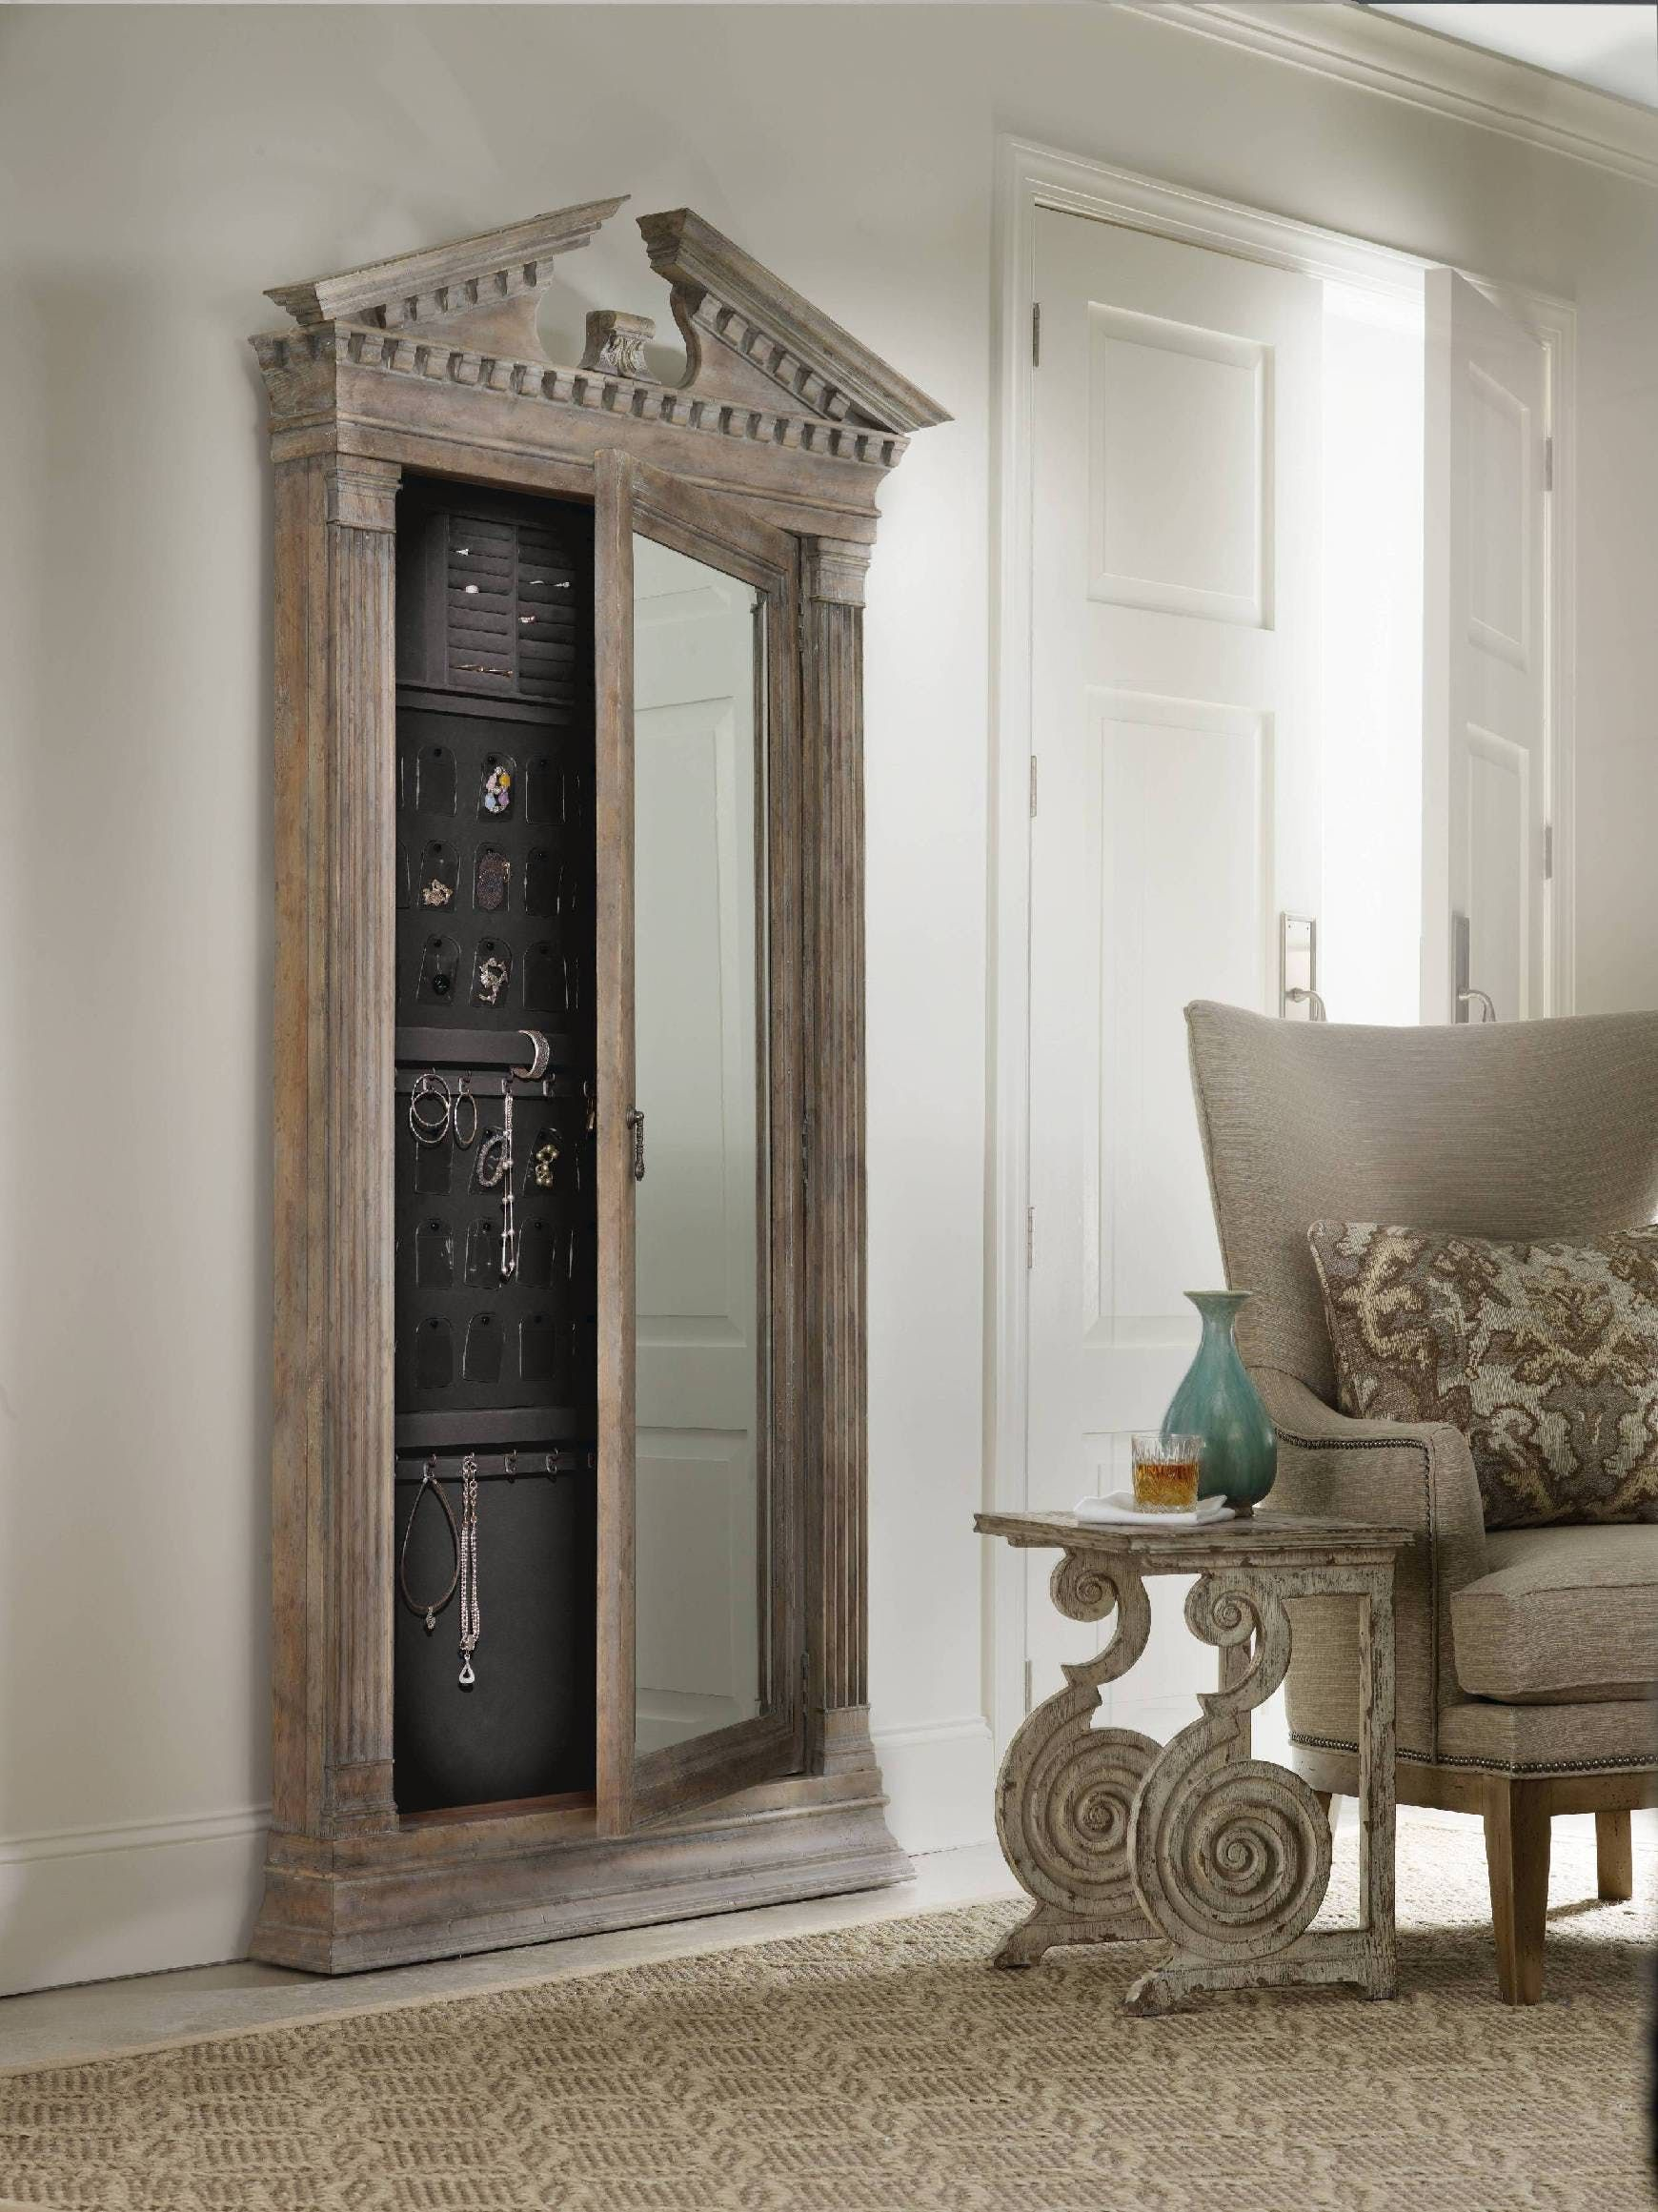 Hooker Furniture Rhapsody Floor Mirror wJewelry Armoire Storage